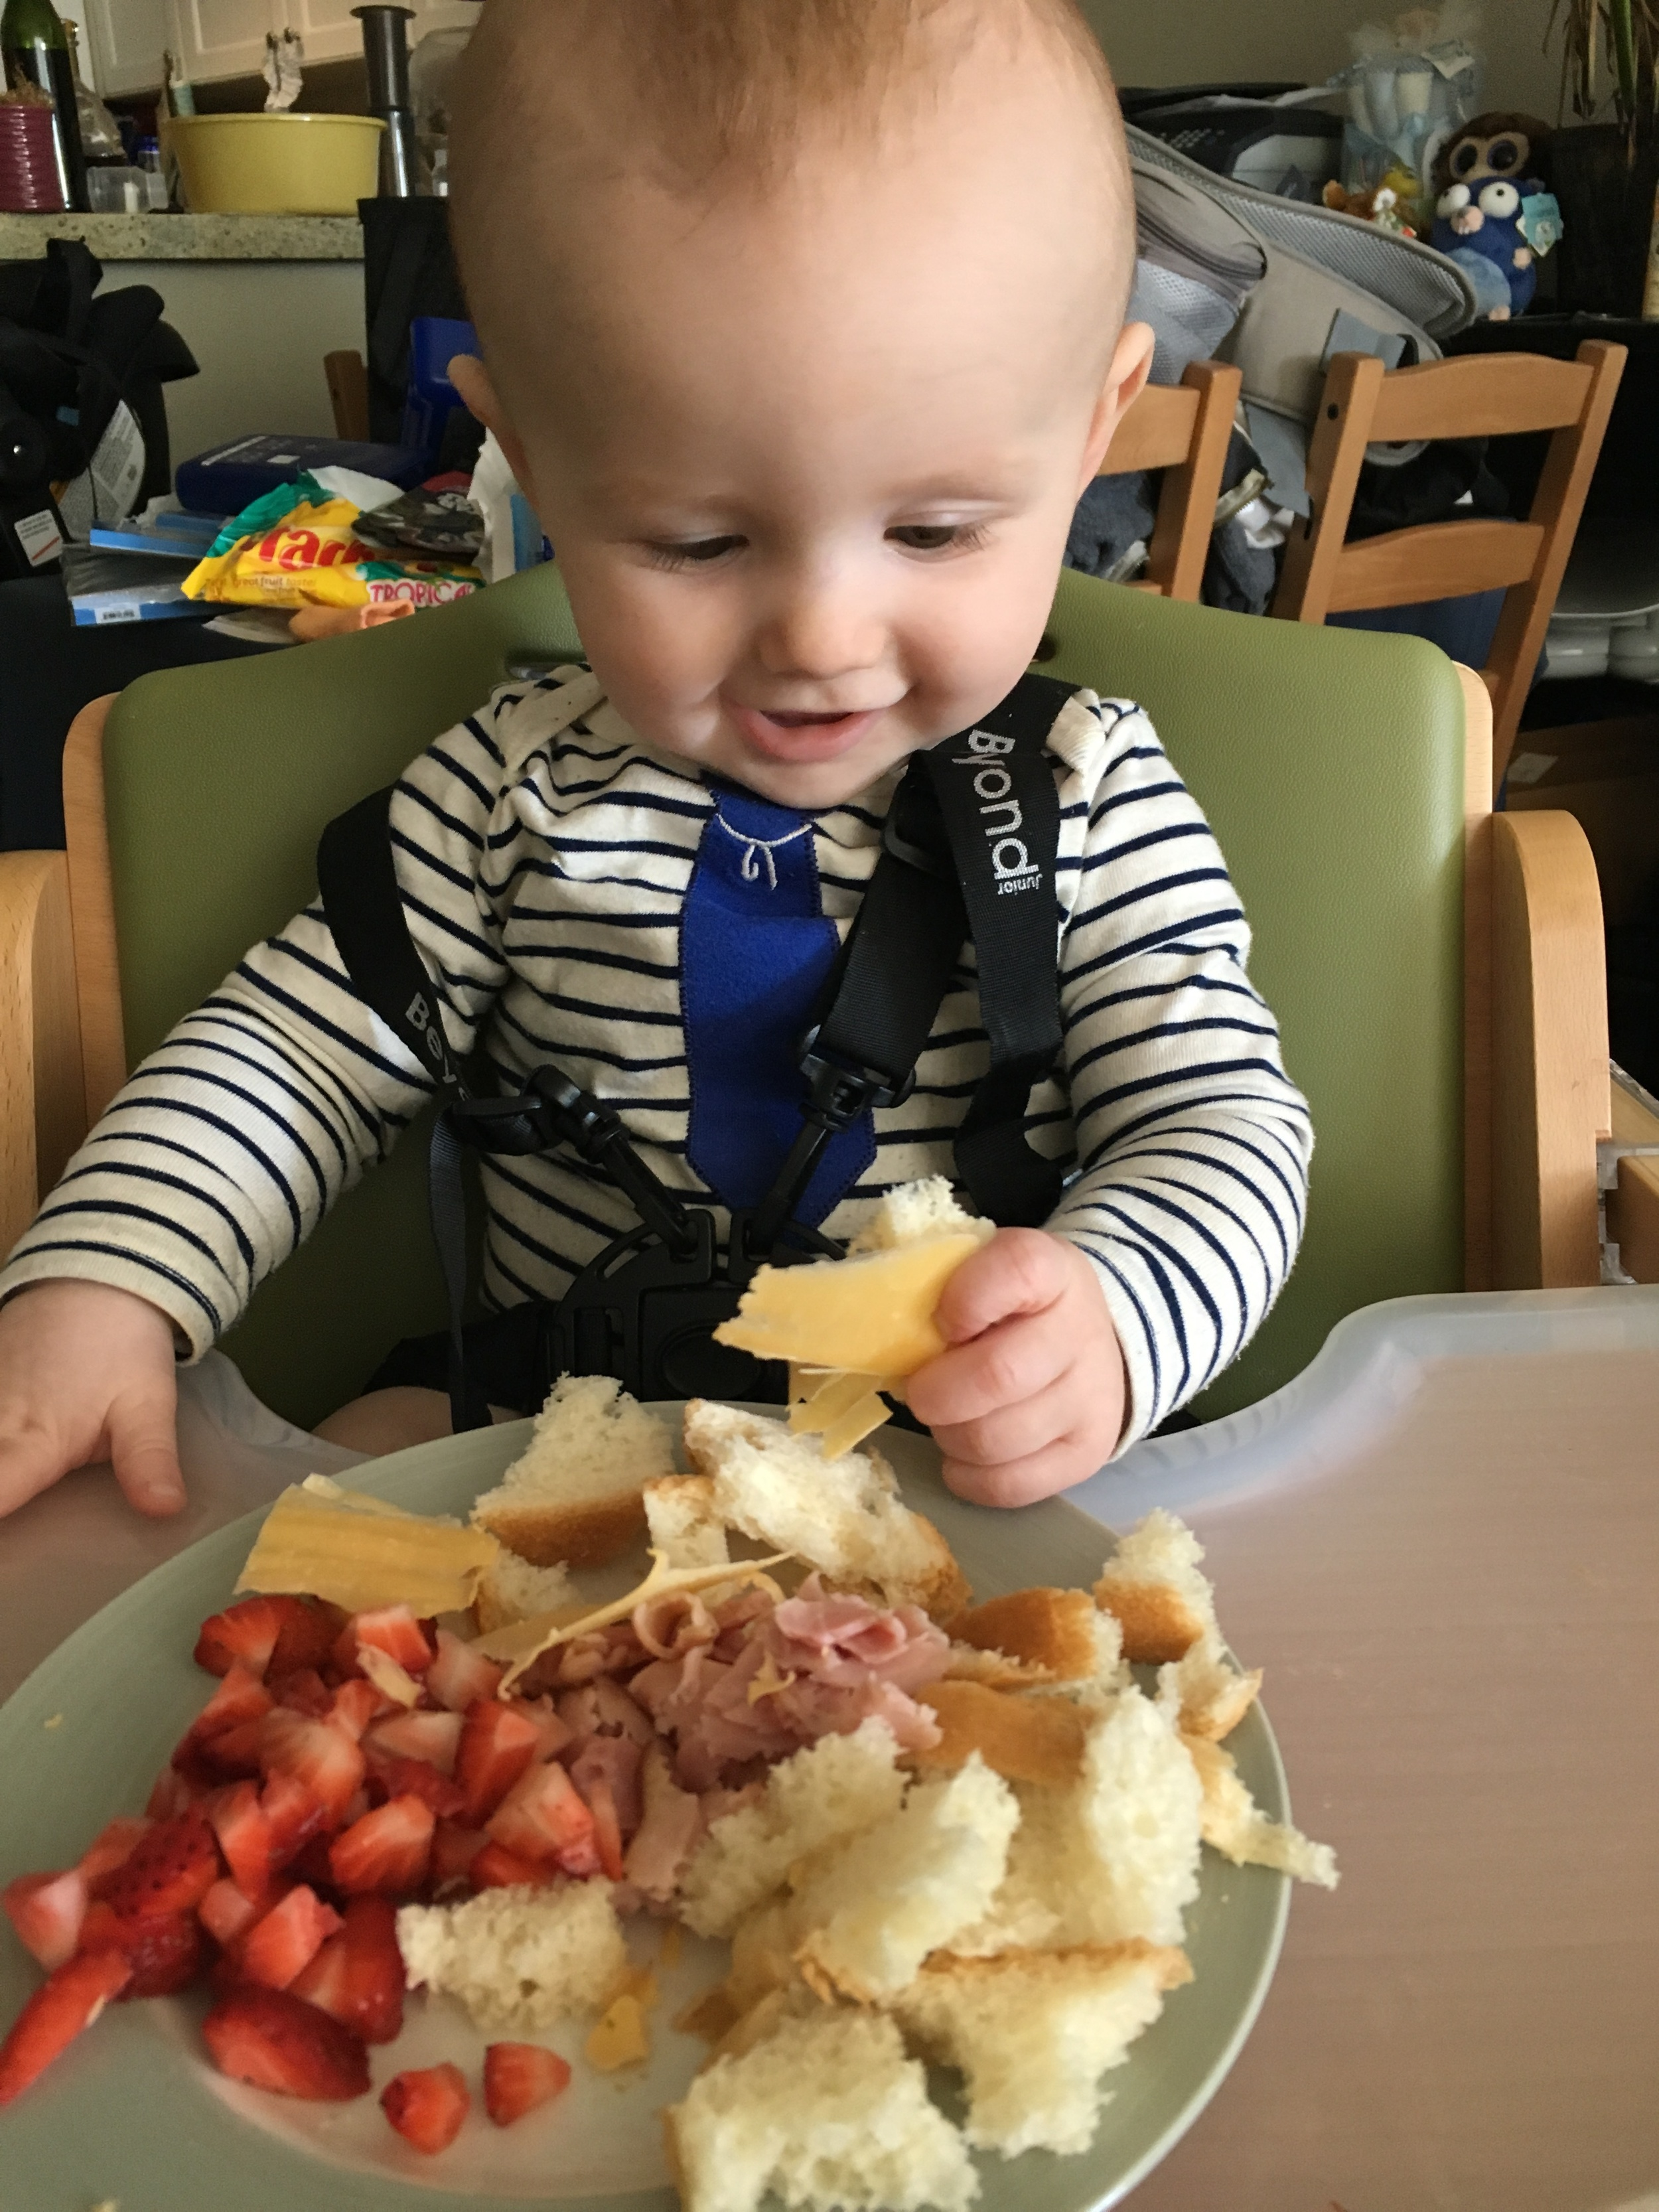 Look at how excited this baby is about food. He is definitely going to be a foodie like his mama!